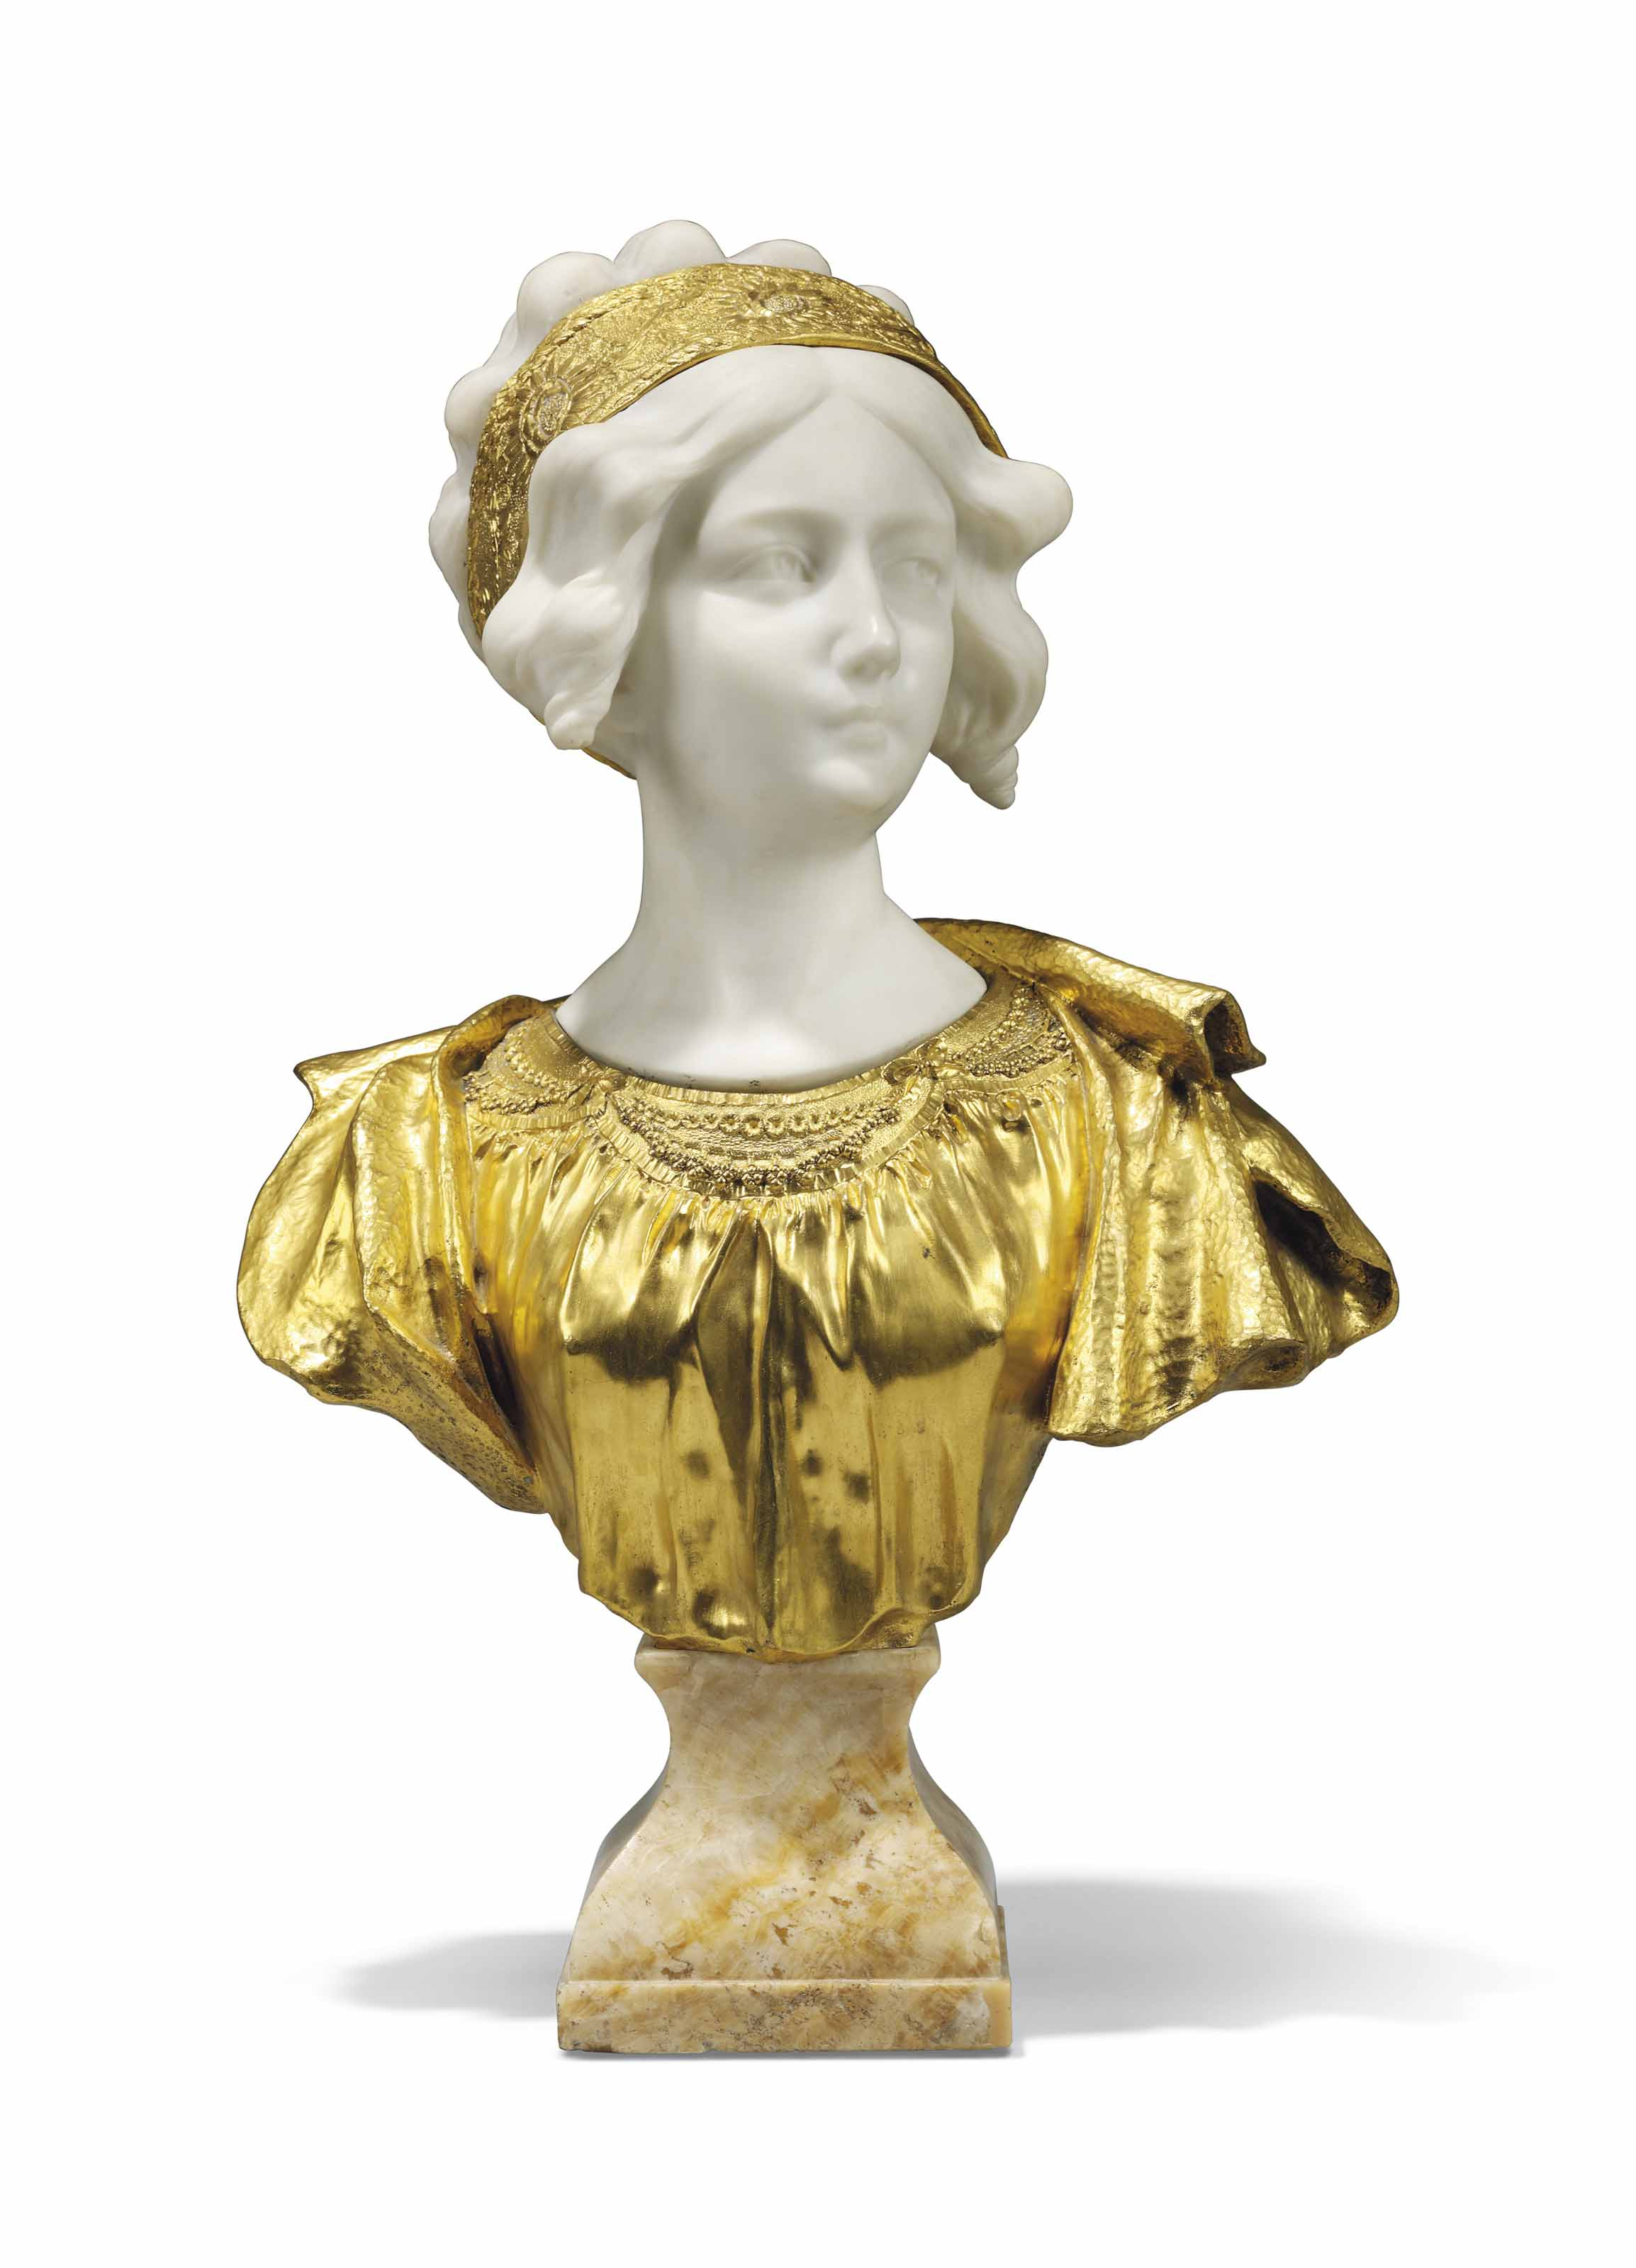 A FRENCH GILT-BRONZE AND WHITE MARBLE BUST OF A MAIDEN